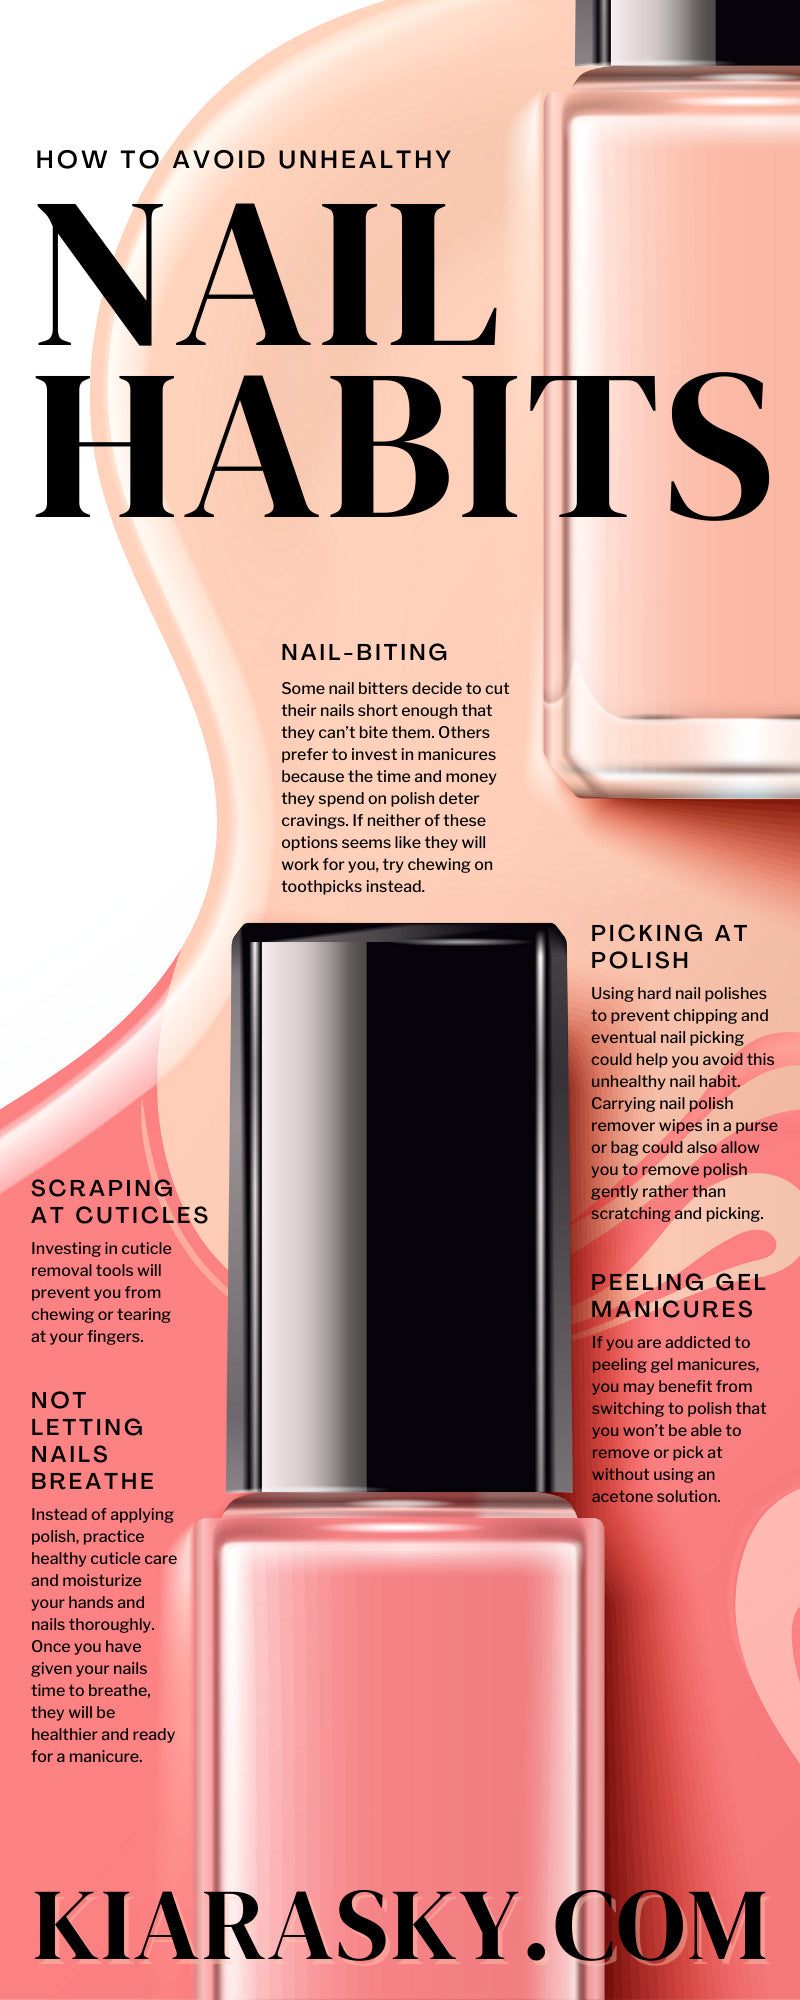 How To Avoid Unhealthy Nail Habits